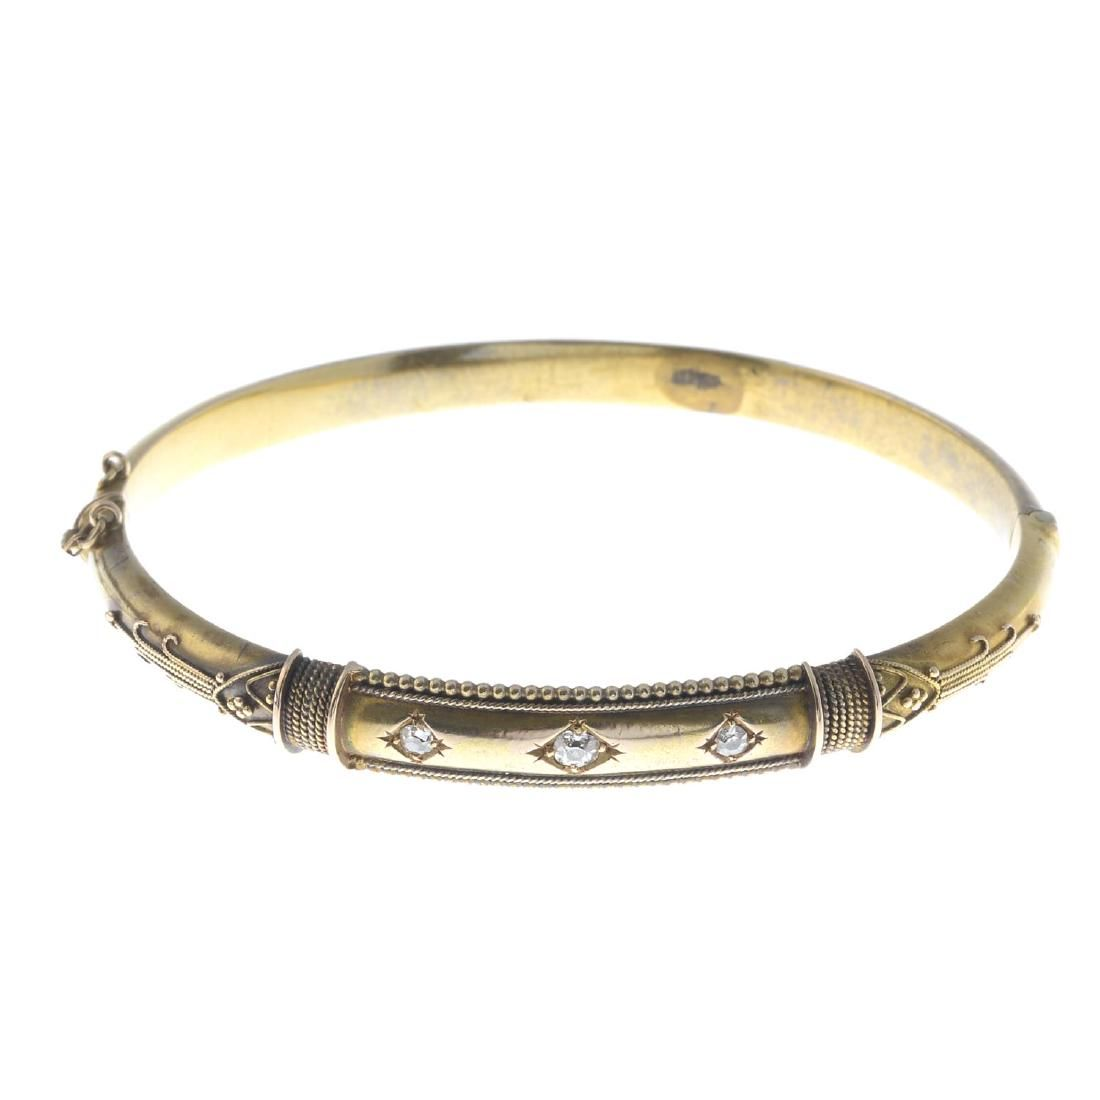 A late Victorian gold diamond hinged bangle. The